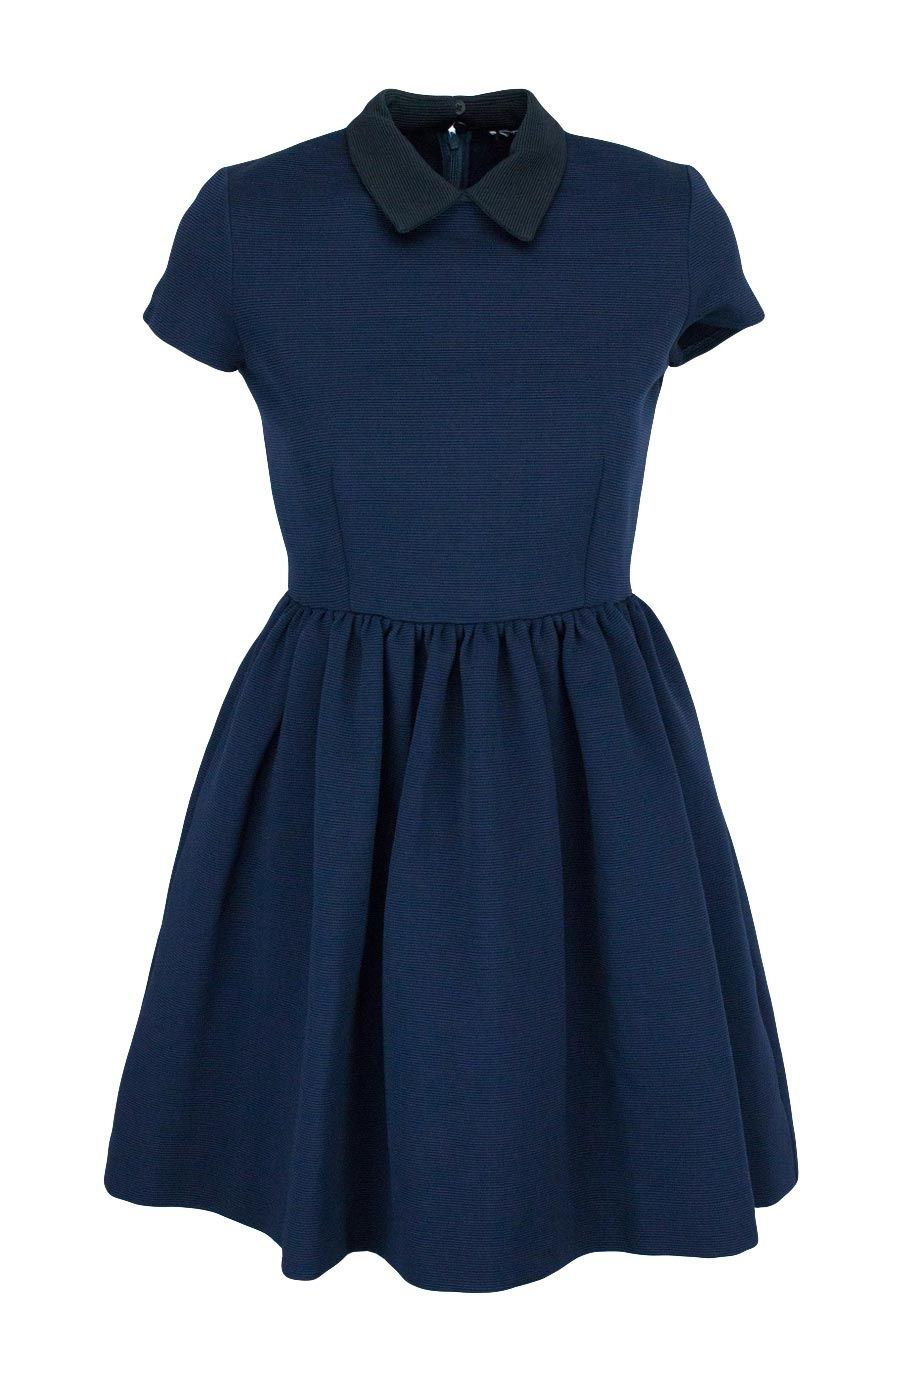 d7f4206ab9 Miu Miu (HK$2,800) - Navy and black, capped sleeve, high collar mini dress  with pleated skirt - Shop now on HULA